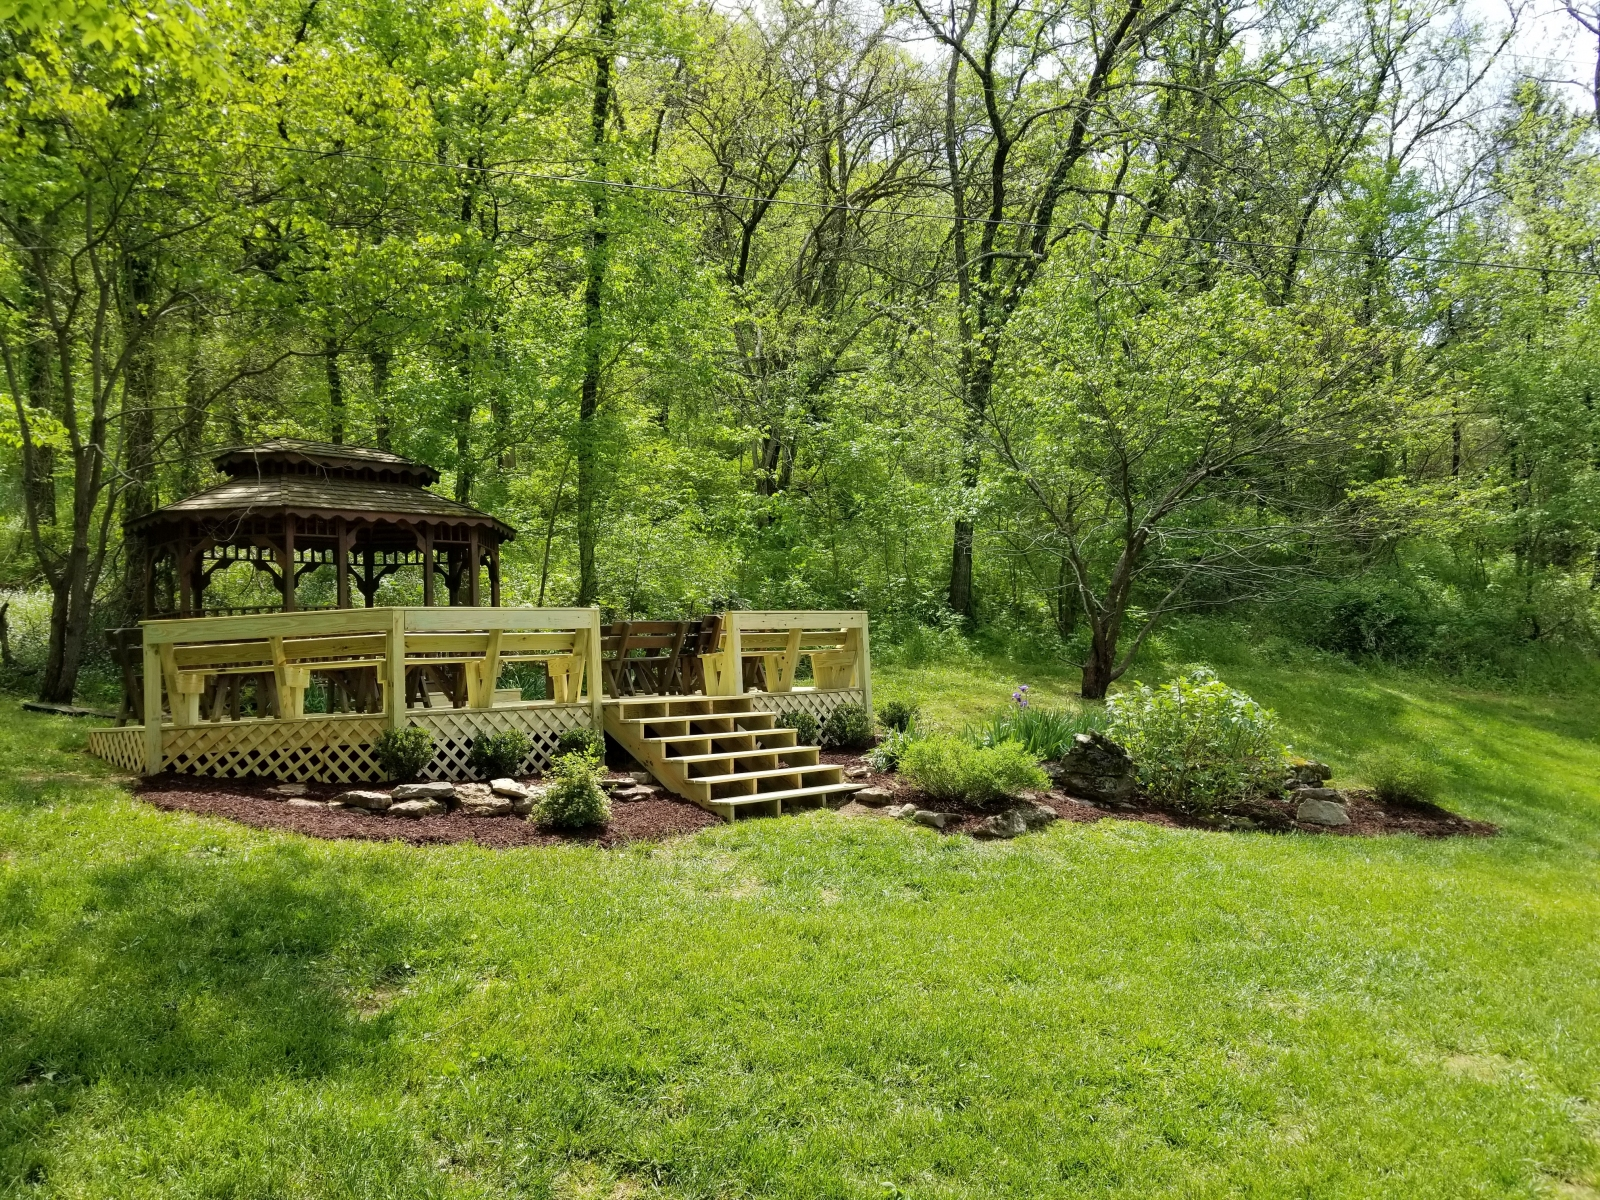 Gazebo with extended deck added in 2018